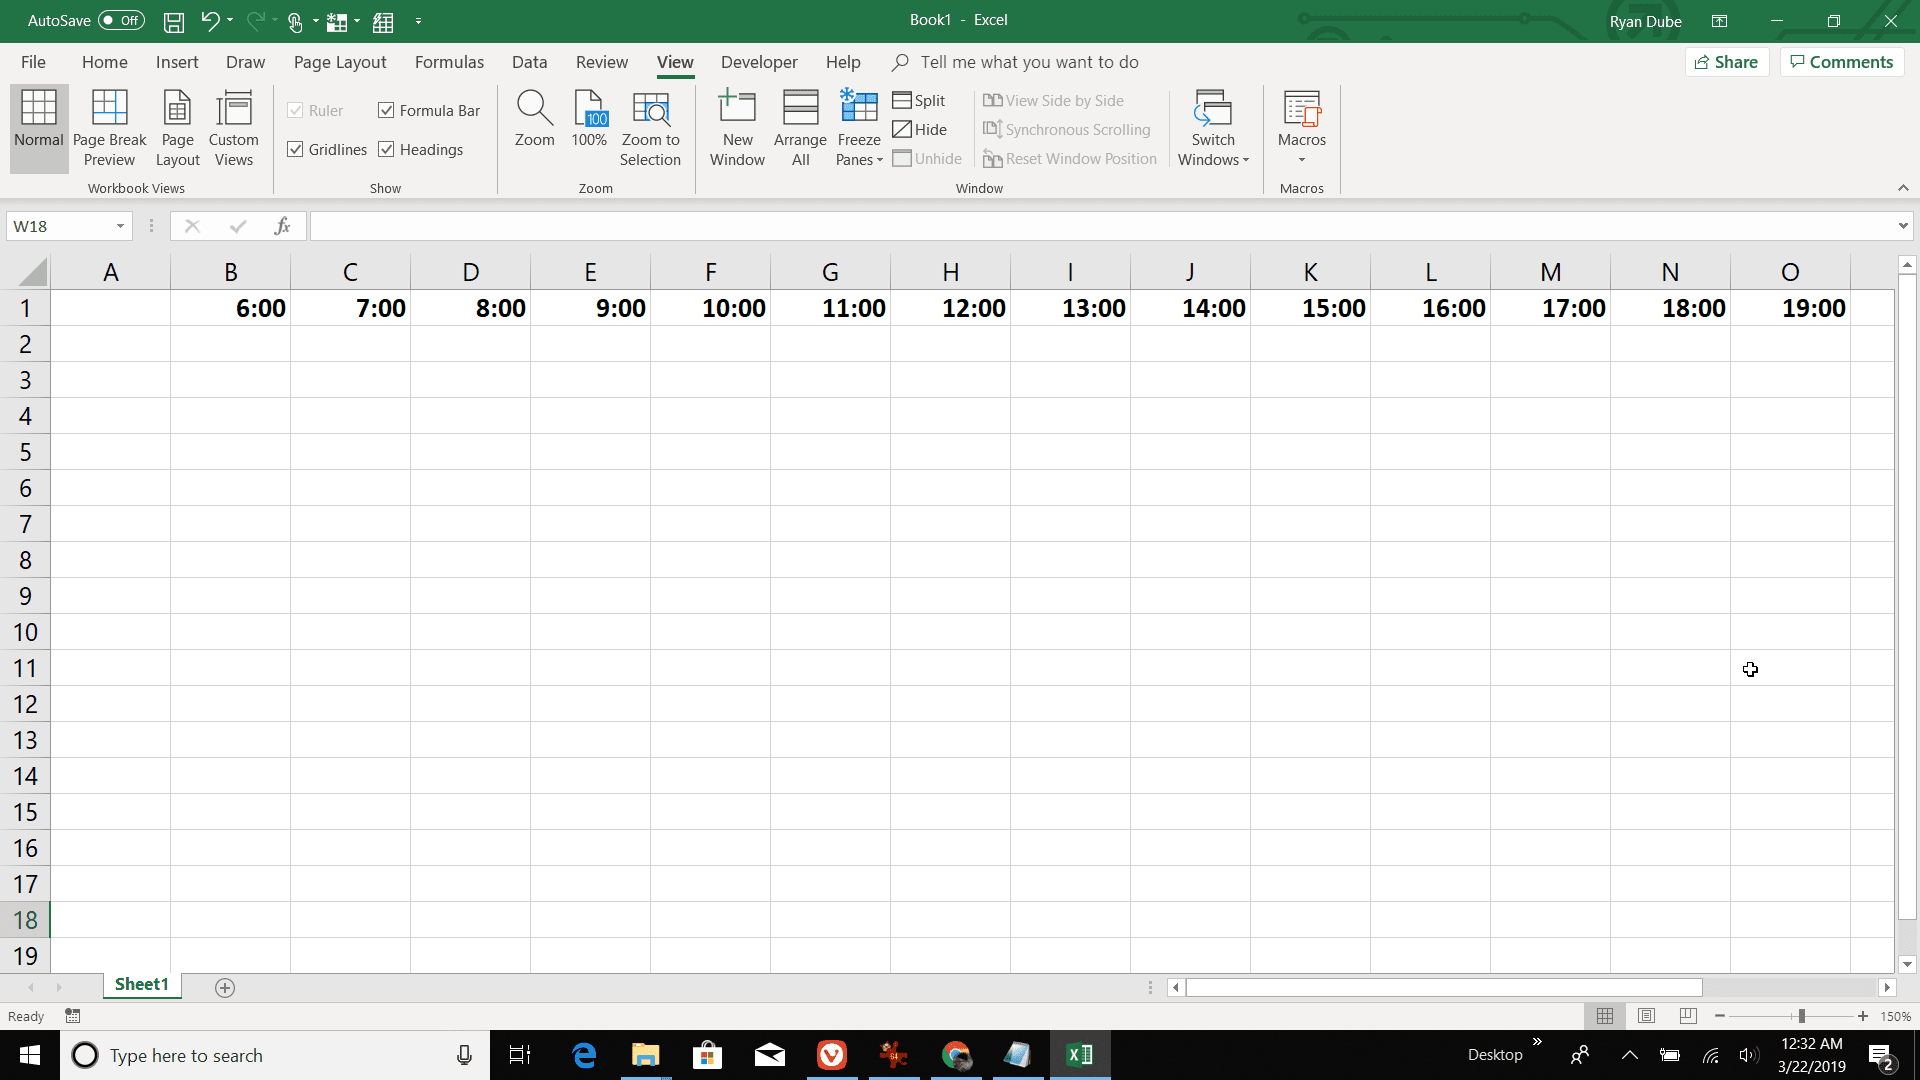 Screenshot of creating an hourly header row in Excel